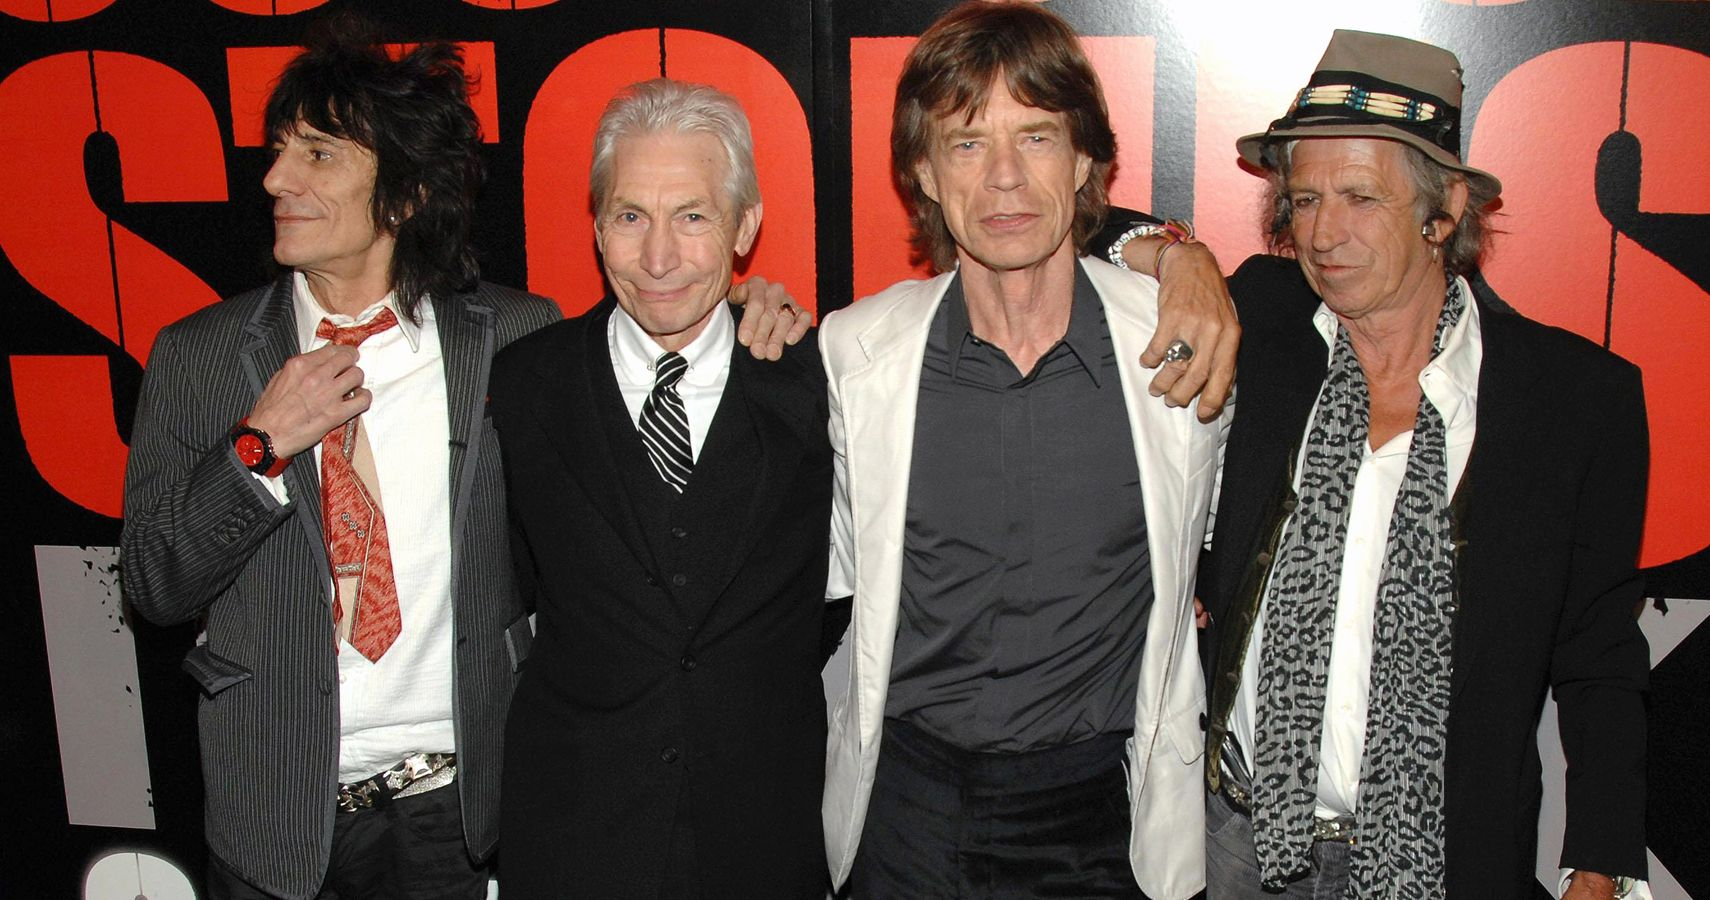 The Rolling Stones: Rock's Billion Dollar Band Plays On